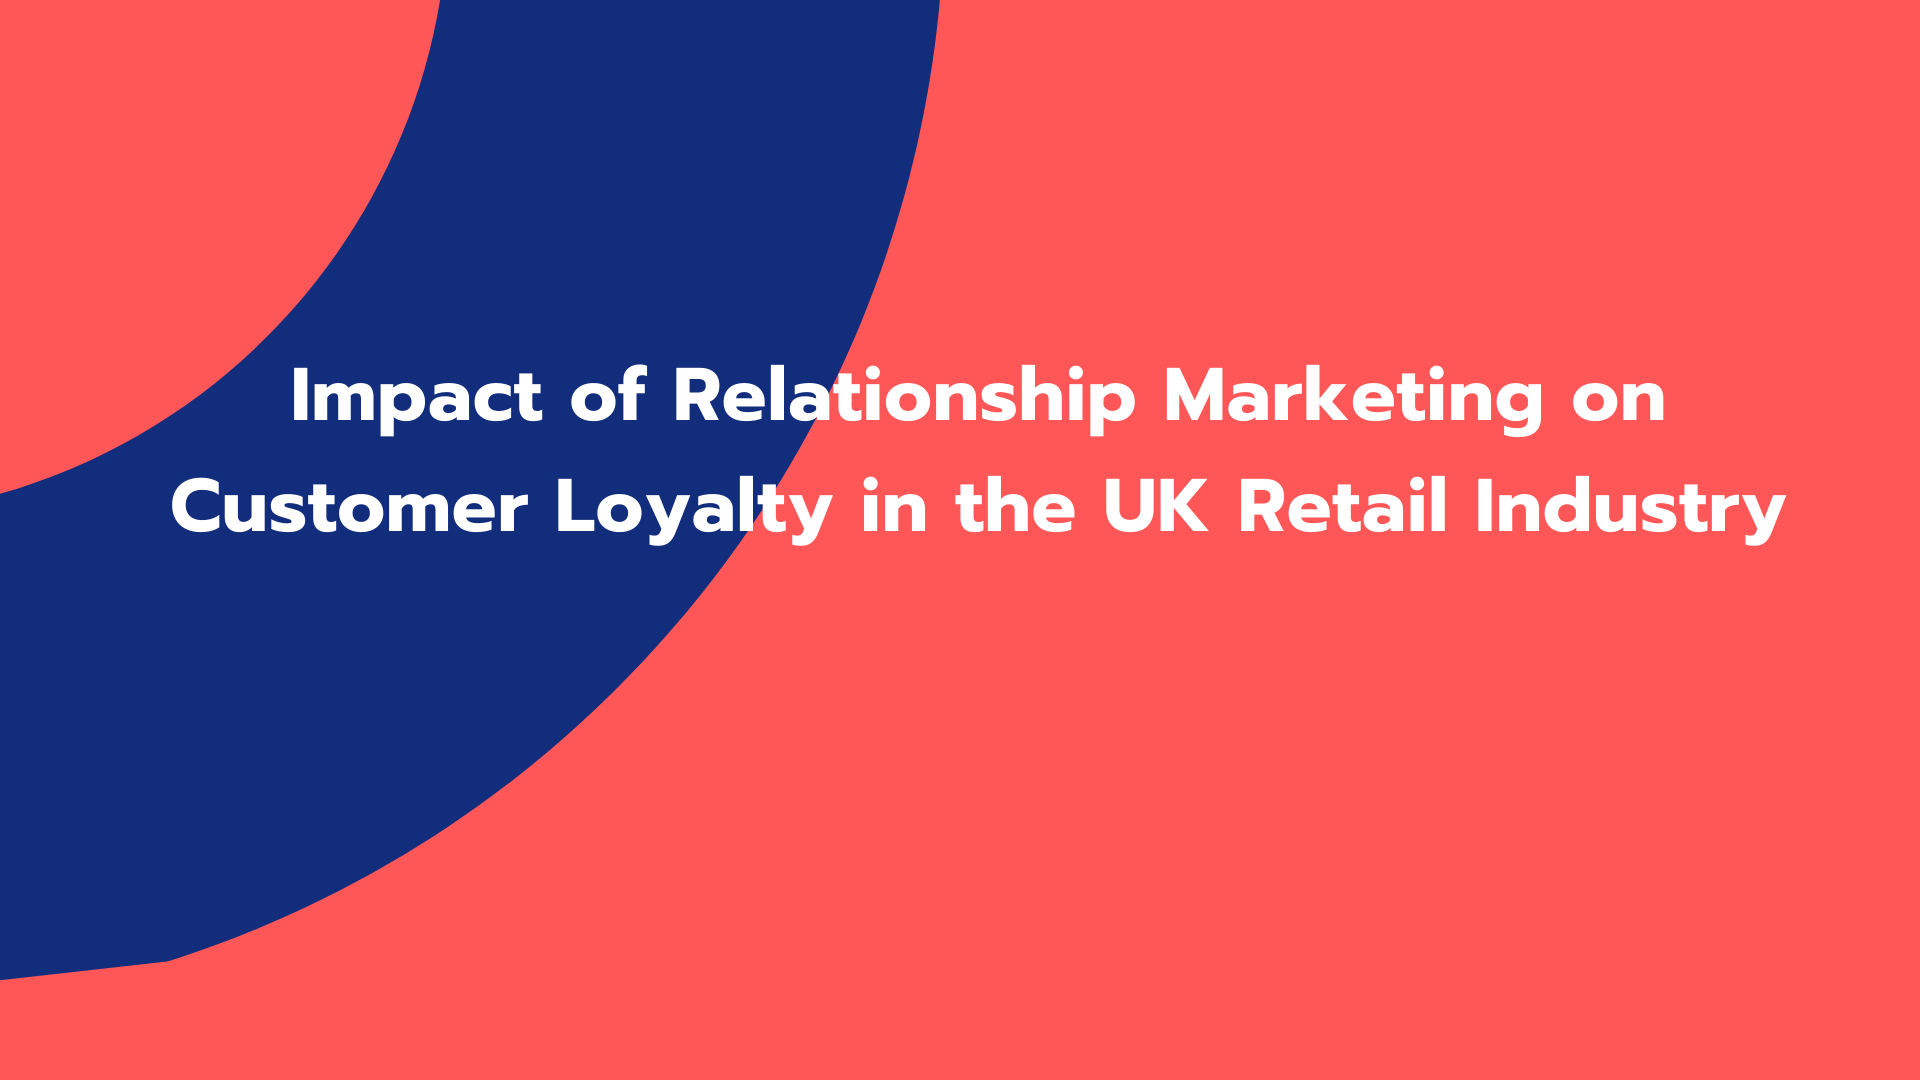 Impact of Relationship Marketing on Customer Loyalty in the UK Retail Industry